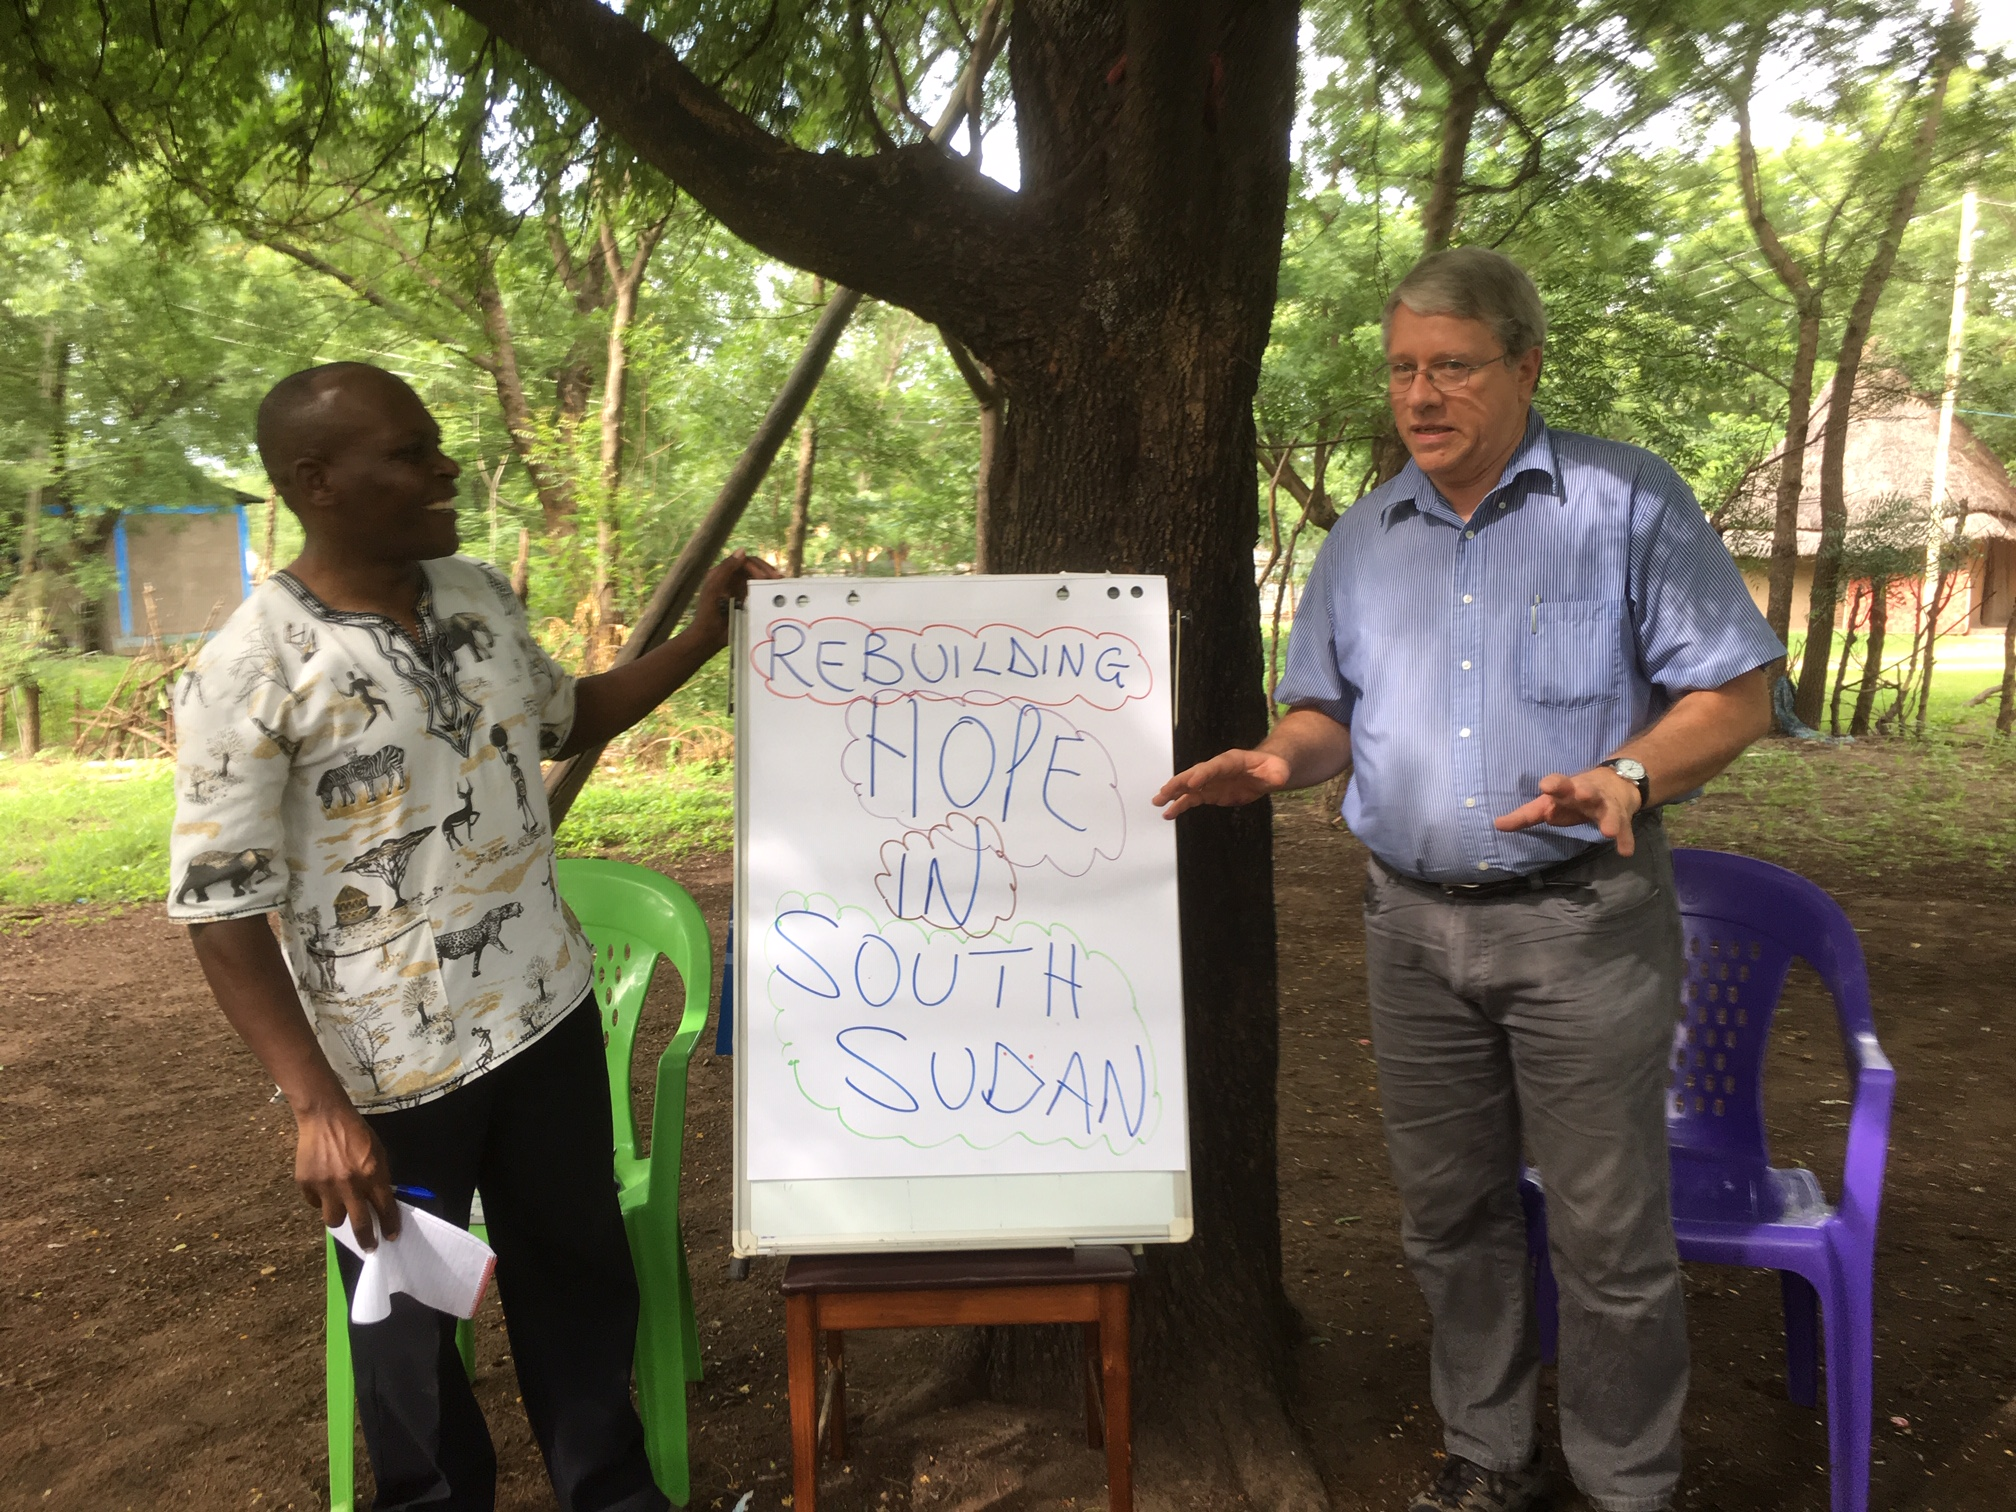 """Frank and Thaddeus presenting the TOF Program to help """"Rebuild Hope in South Sudan"""""""